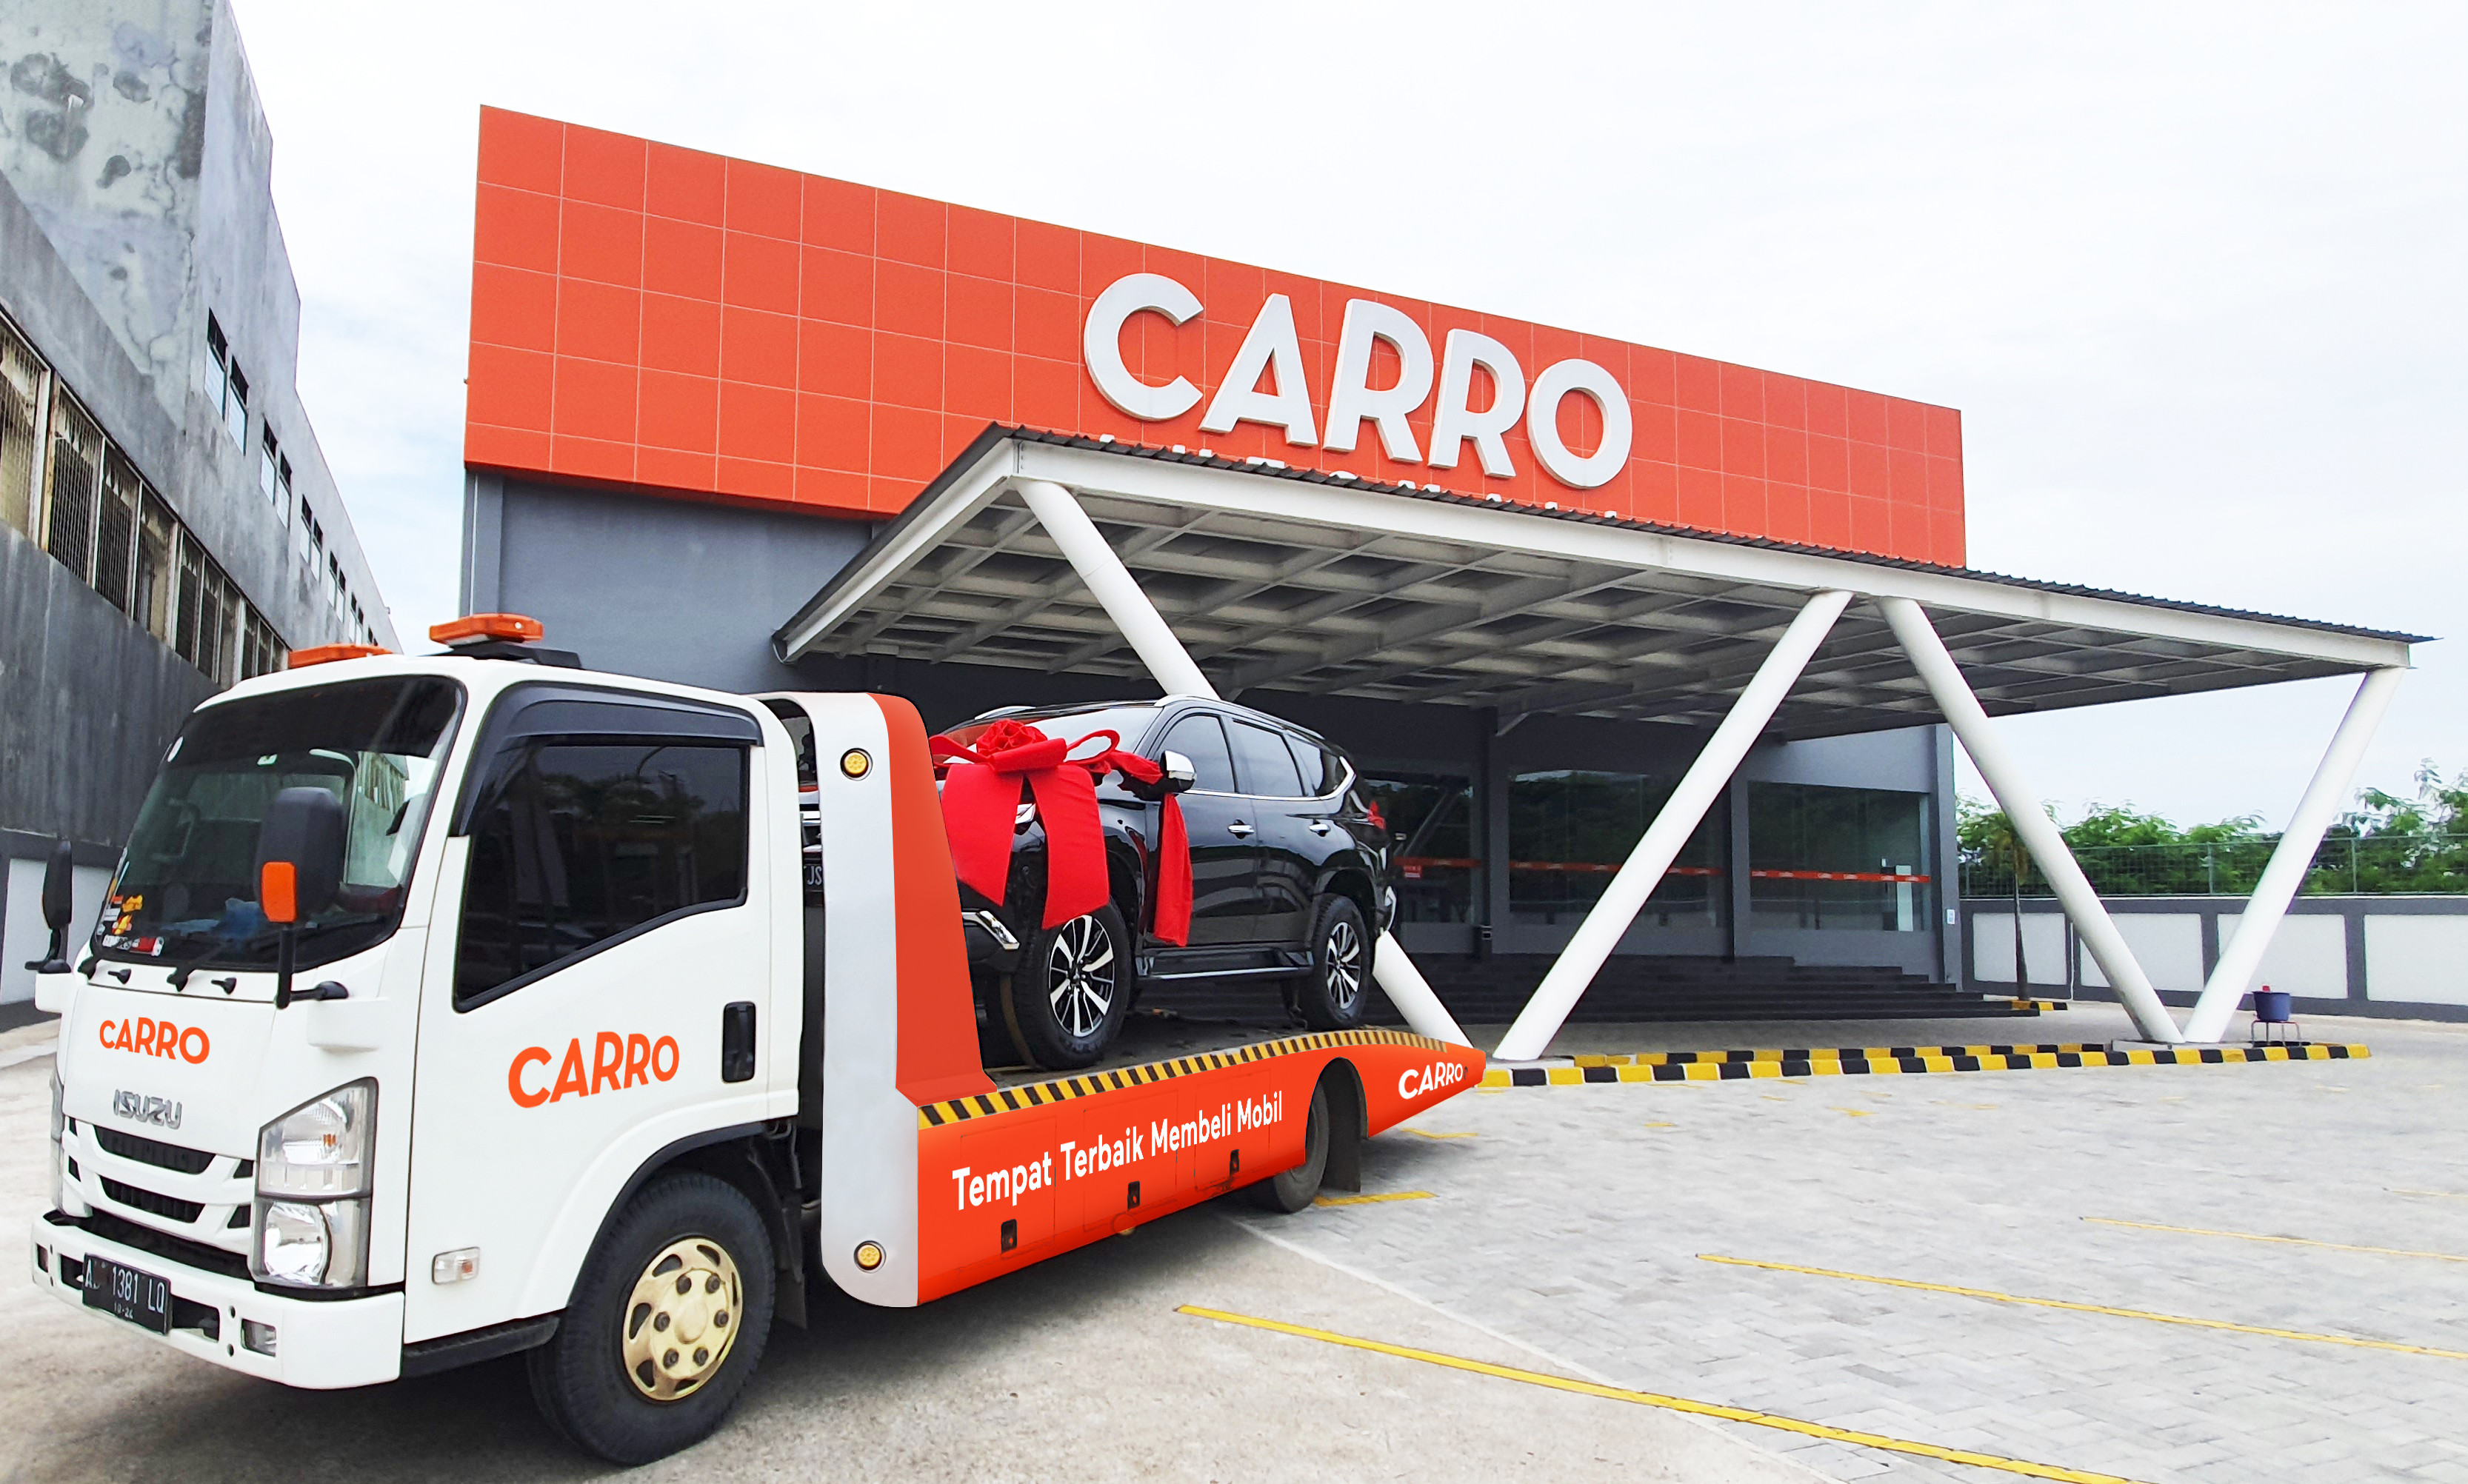 CARRO_CAR_Delivery_Towing-03.jpg